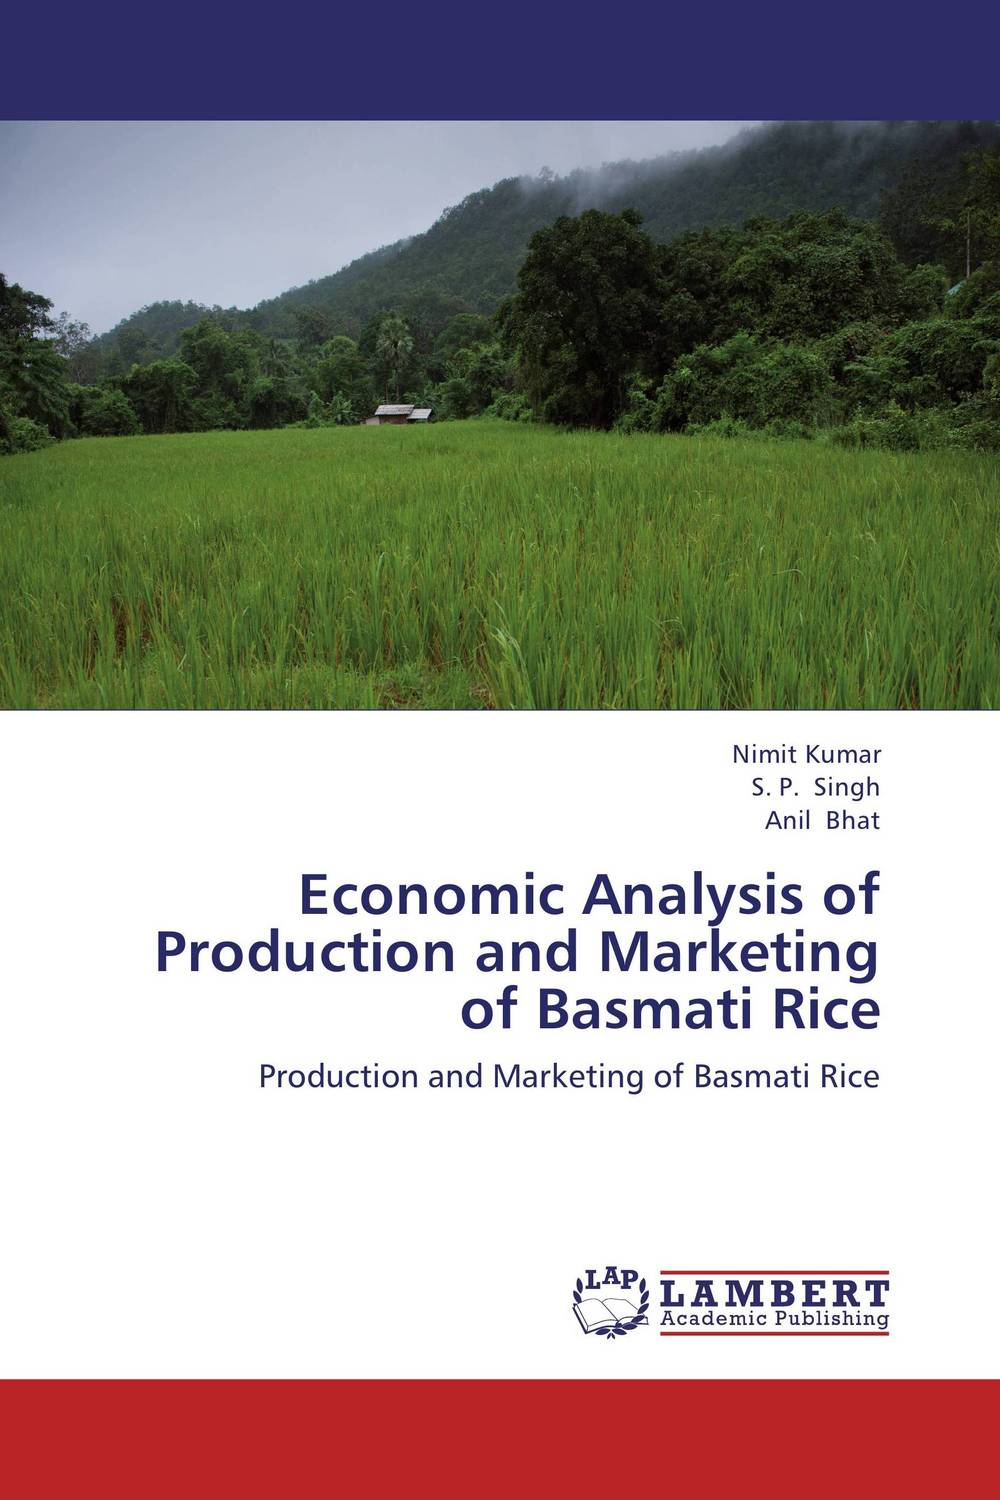 Economic Analysis of Production and Marketing of Basmati Rice mark jeffery data driven marketing the 15 metrics everyone in marketing should know